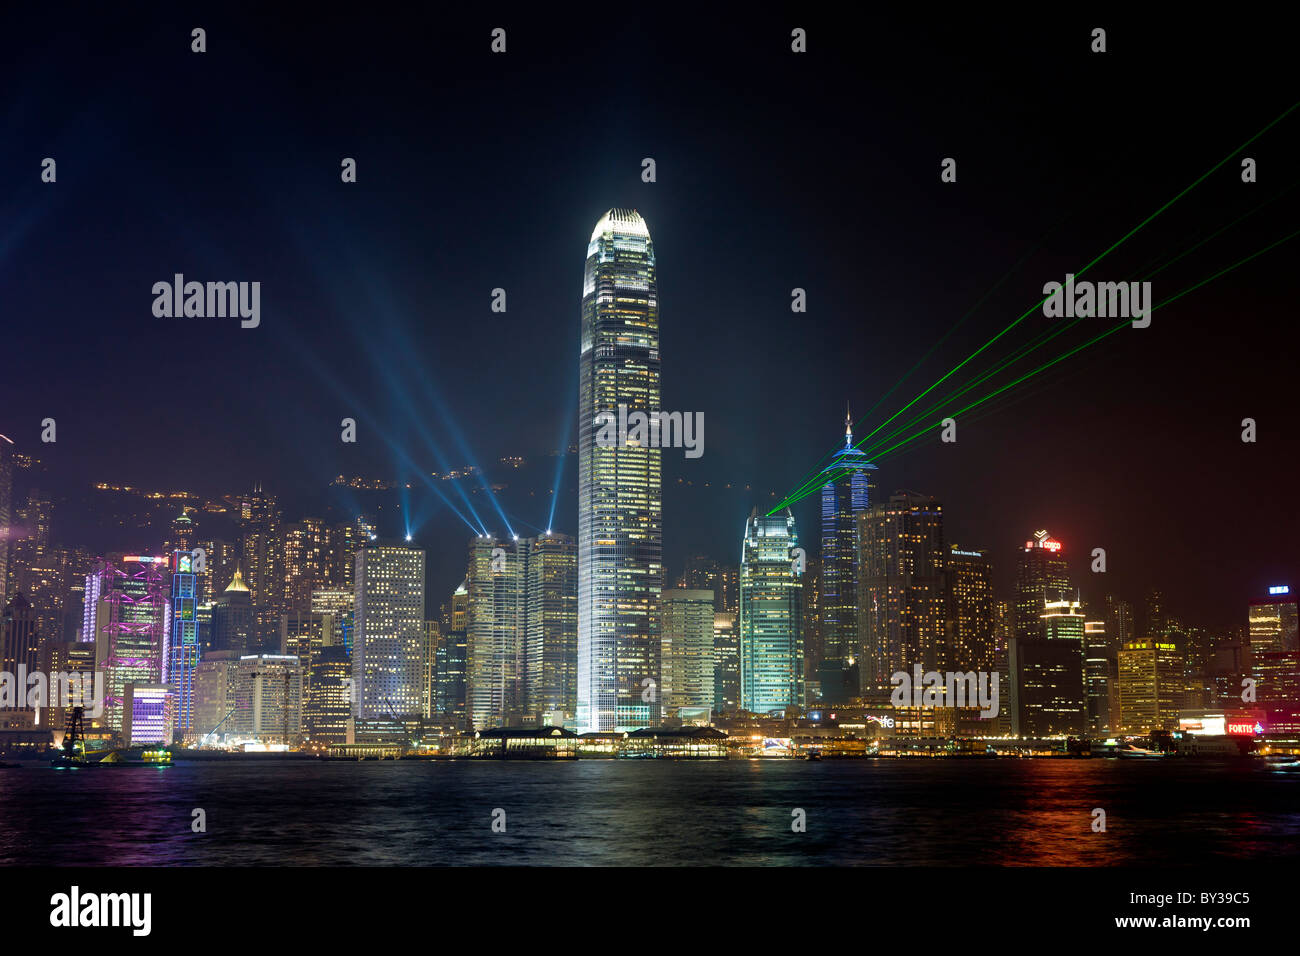 Laser light show Hong Kong Island at night viewed across Victoria Harbour from Kowloon. JMH4154 - Stock Image